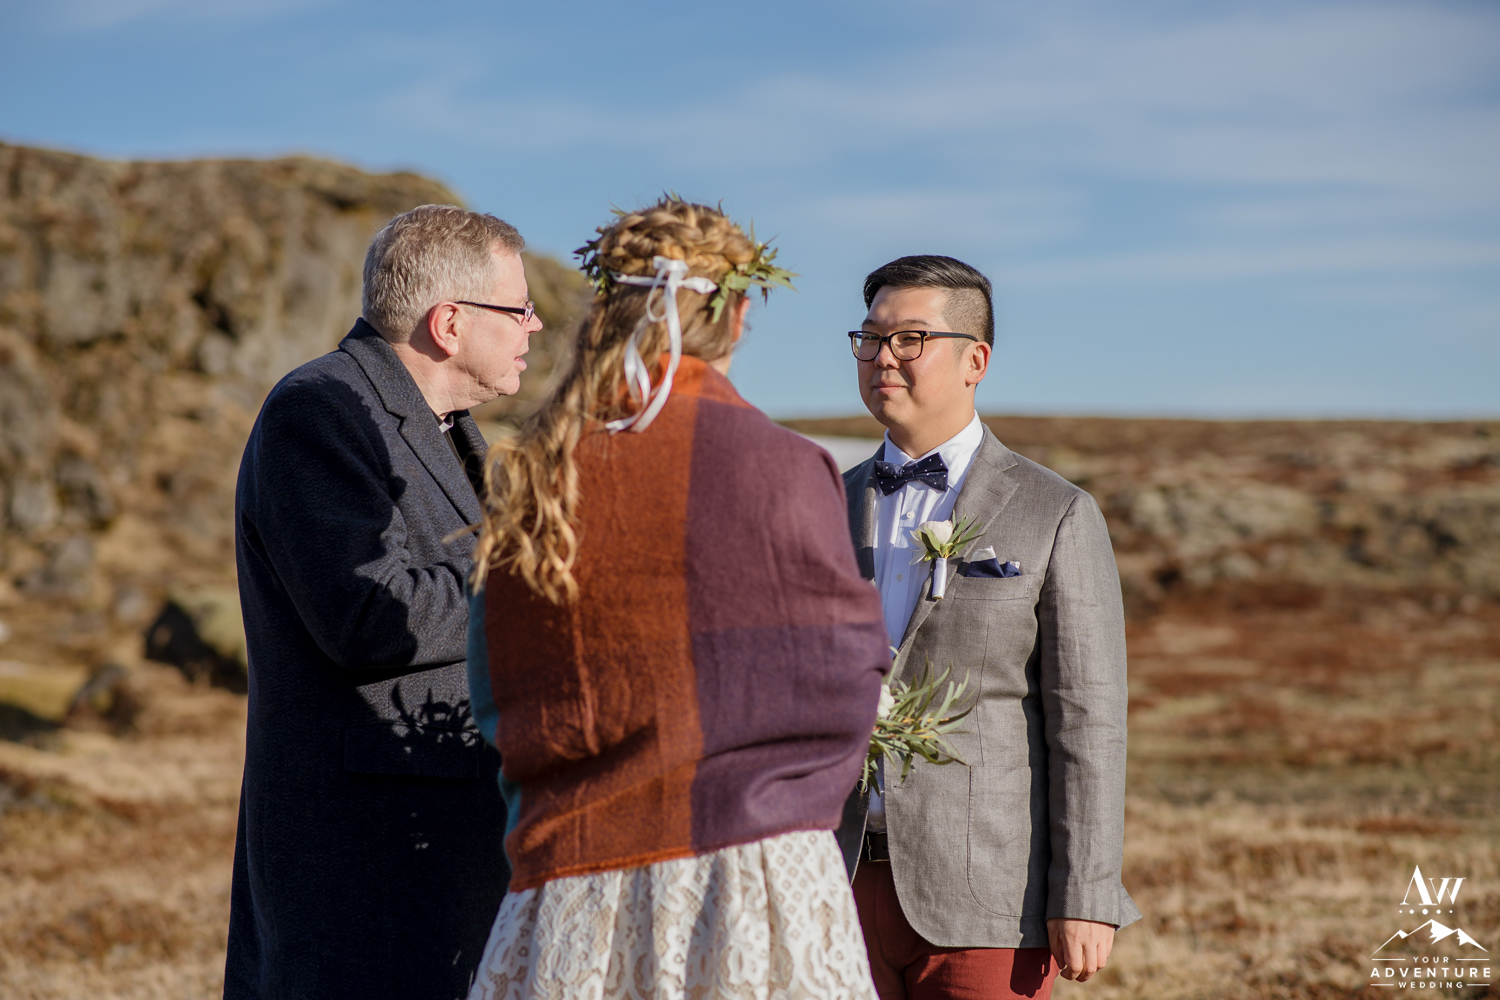 Groom Smiling at His Bride Iceland Wedding Ceremony